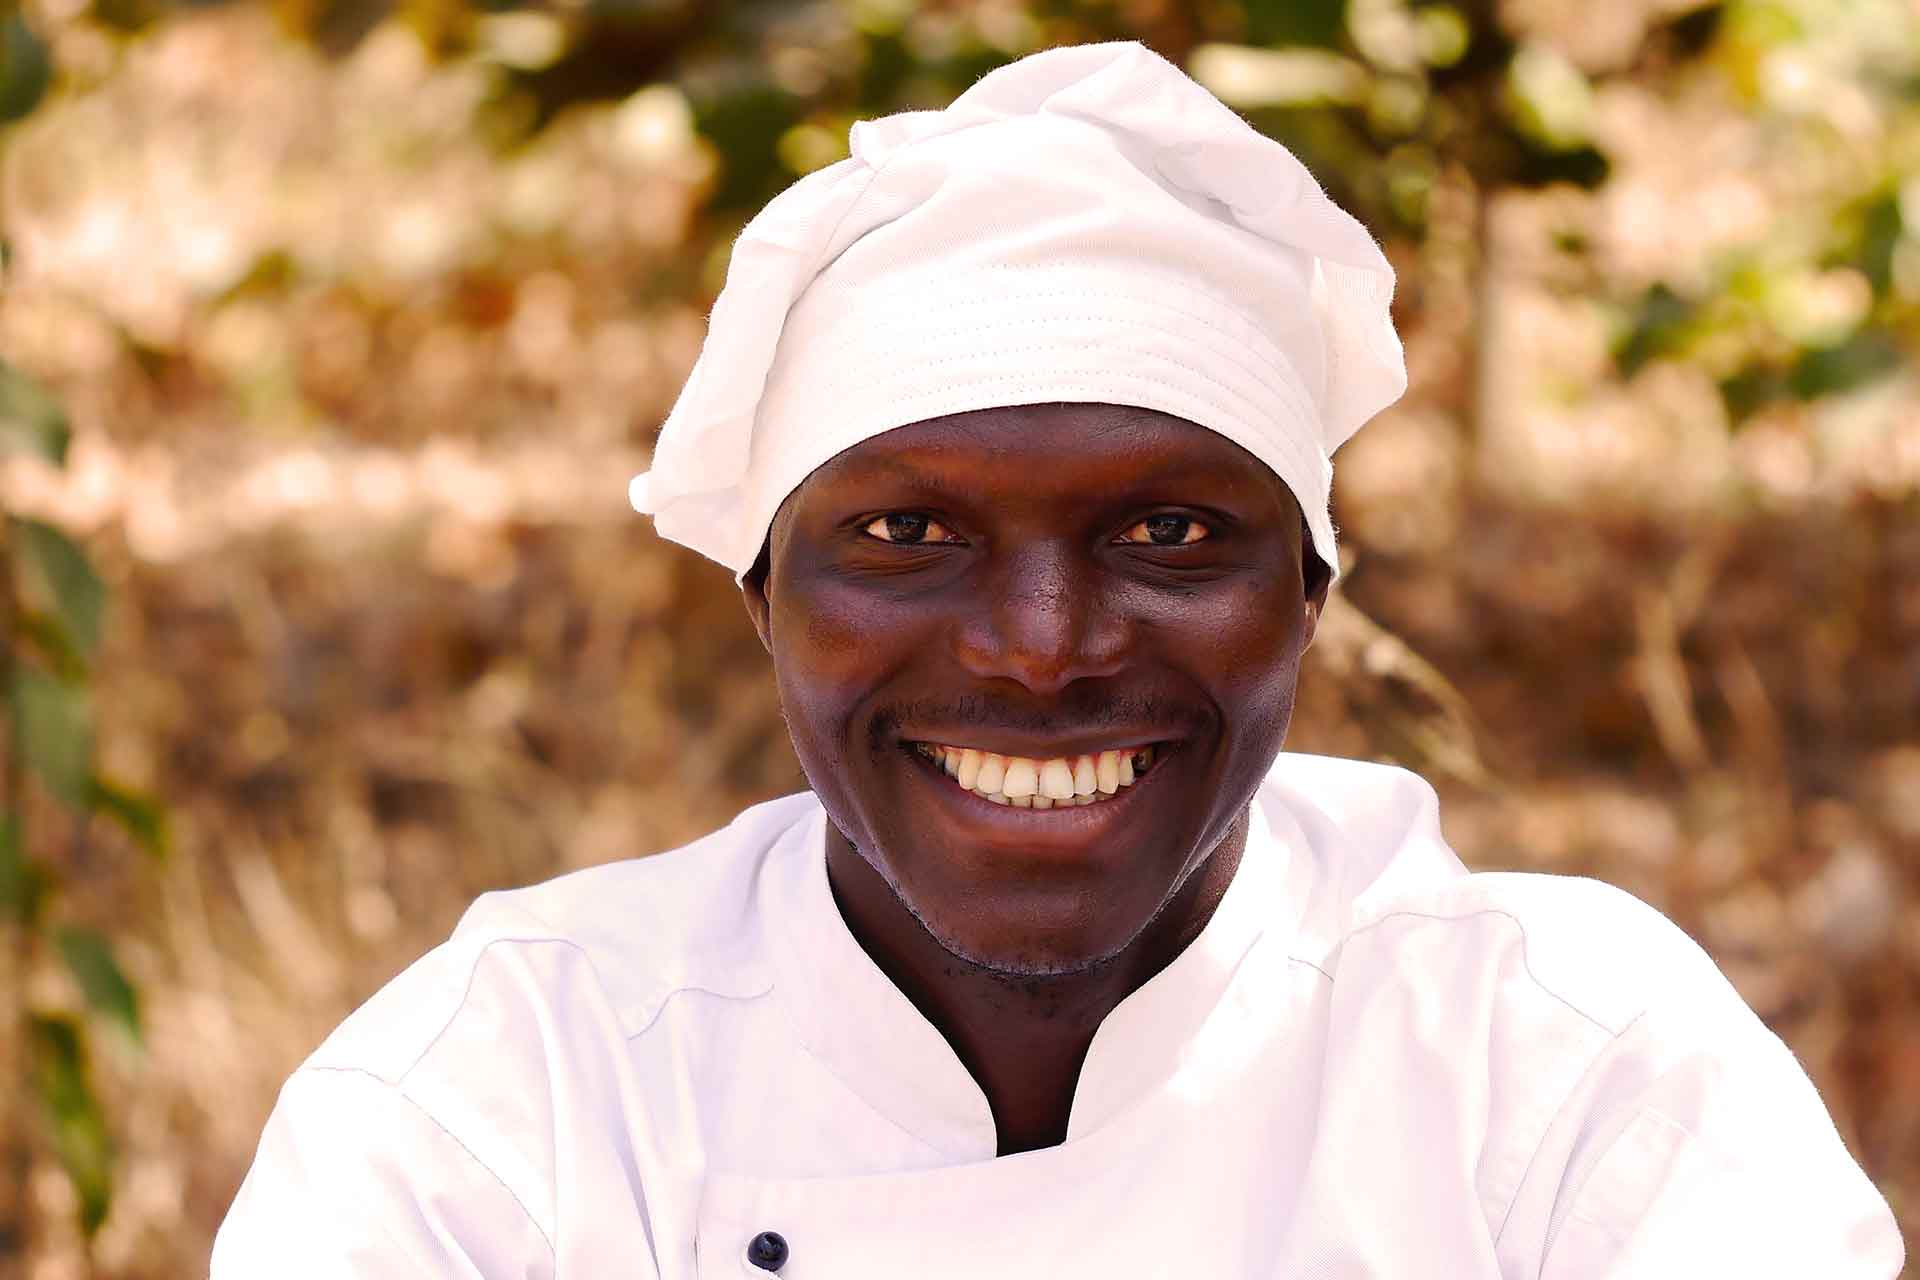 Gambian food cooked by a Gambian chef